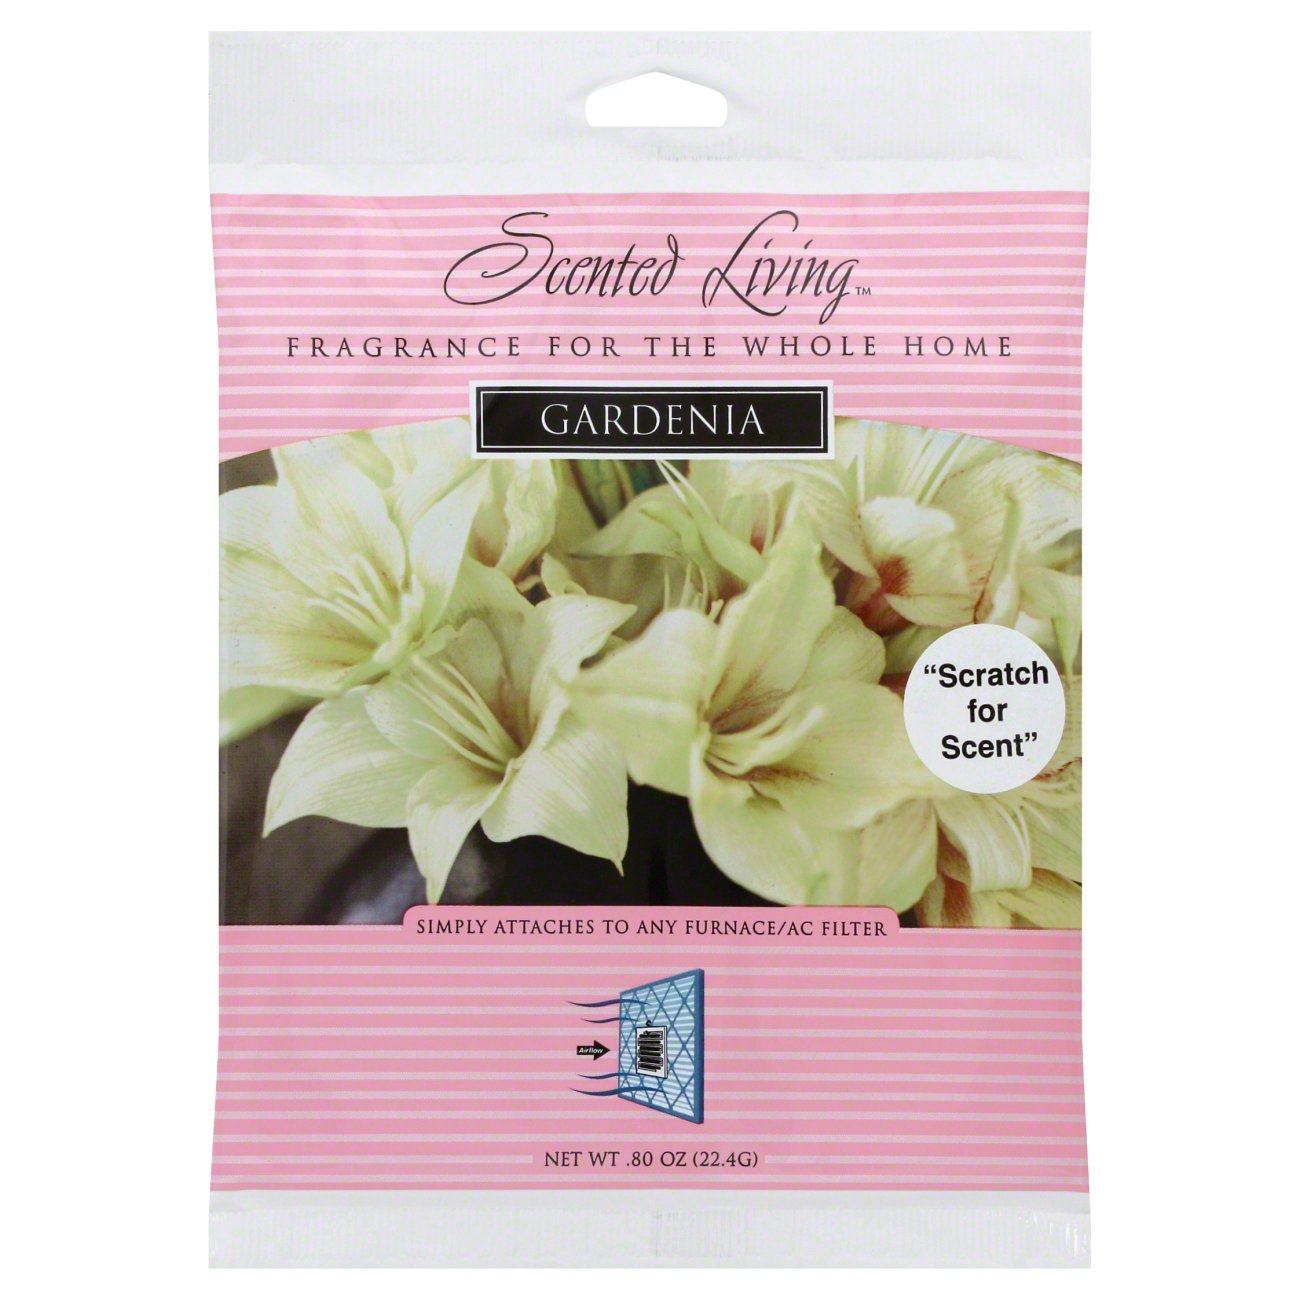 Beautiful Scented Living Gardenia Air Filter Fragrance